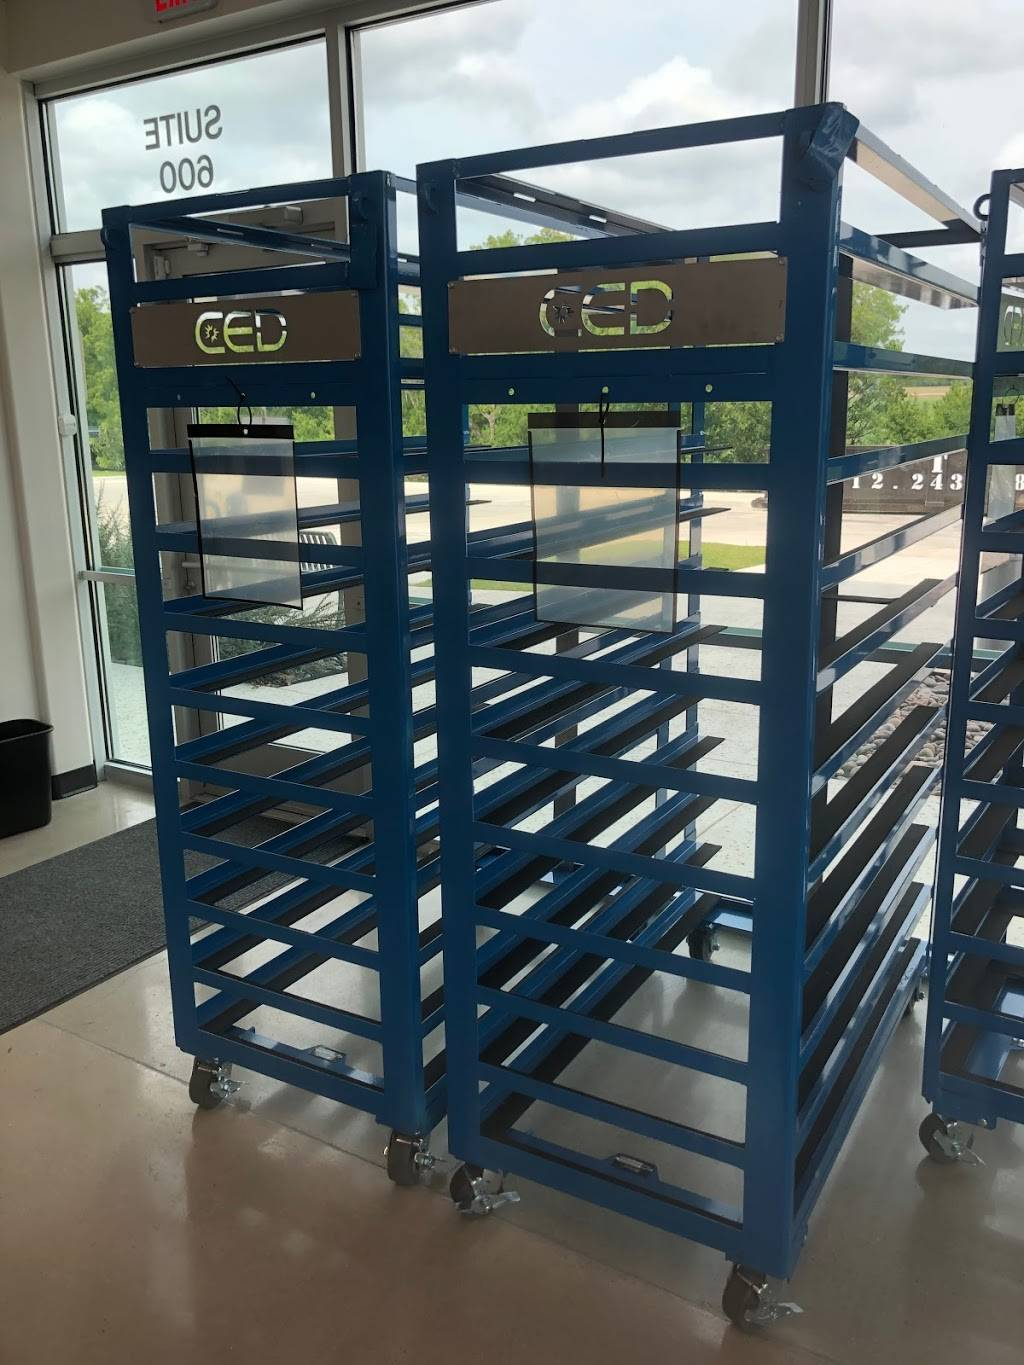 CED Austin - store  | Photo 2 of 7 | Address: 1033 Meister Ln Suite 600, Pflugerville, TX 78660, USA | Phone: (512) 458-6313